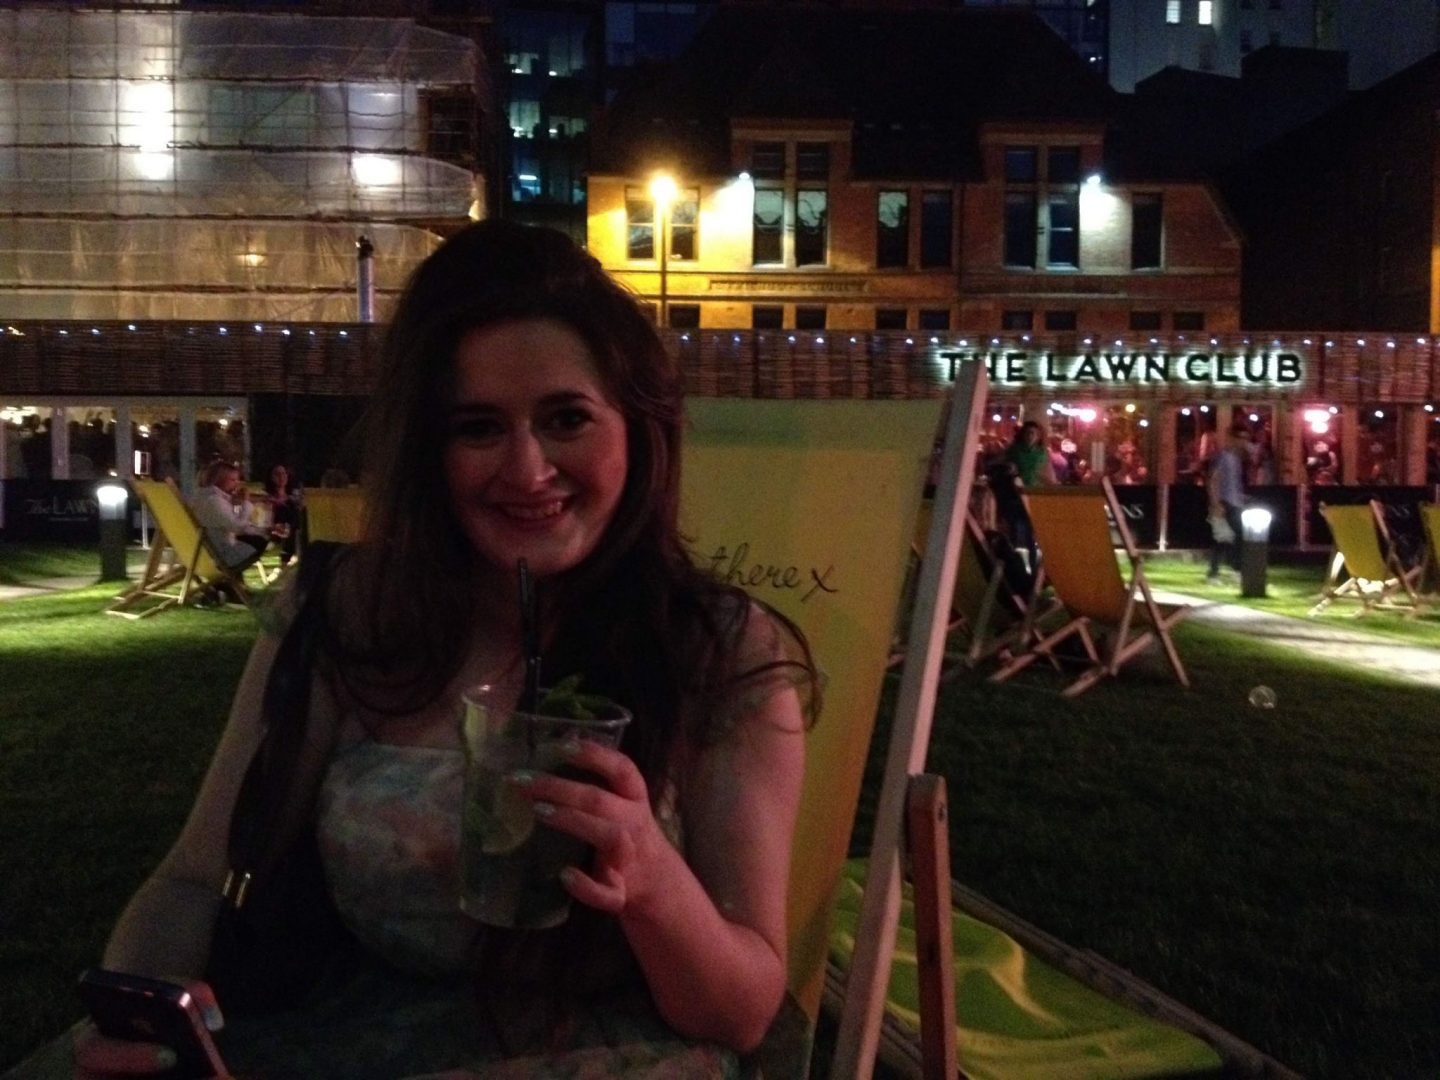 On the deckchairs at the Lawn Club in Spinningfields, Manchester